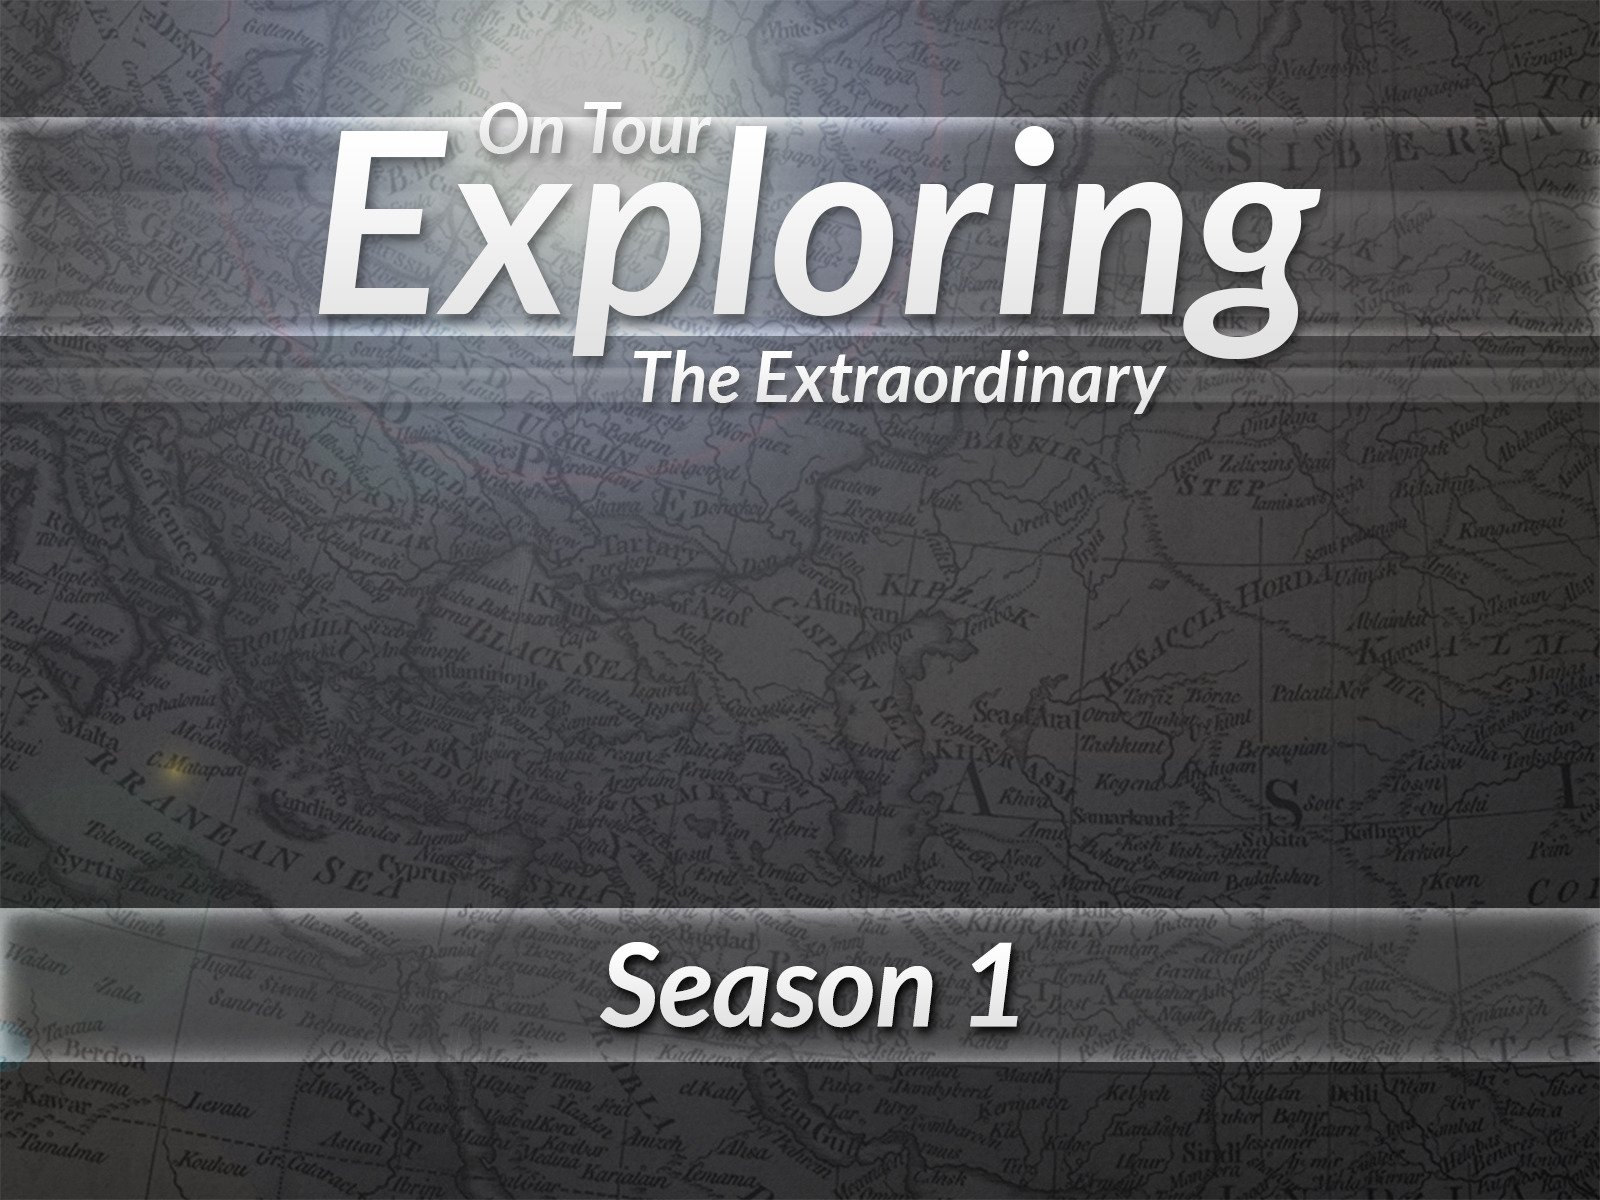 On Tour: Exploring the Extraordinary - Season 1